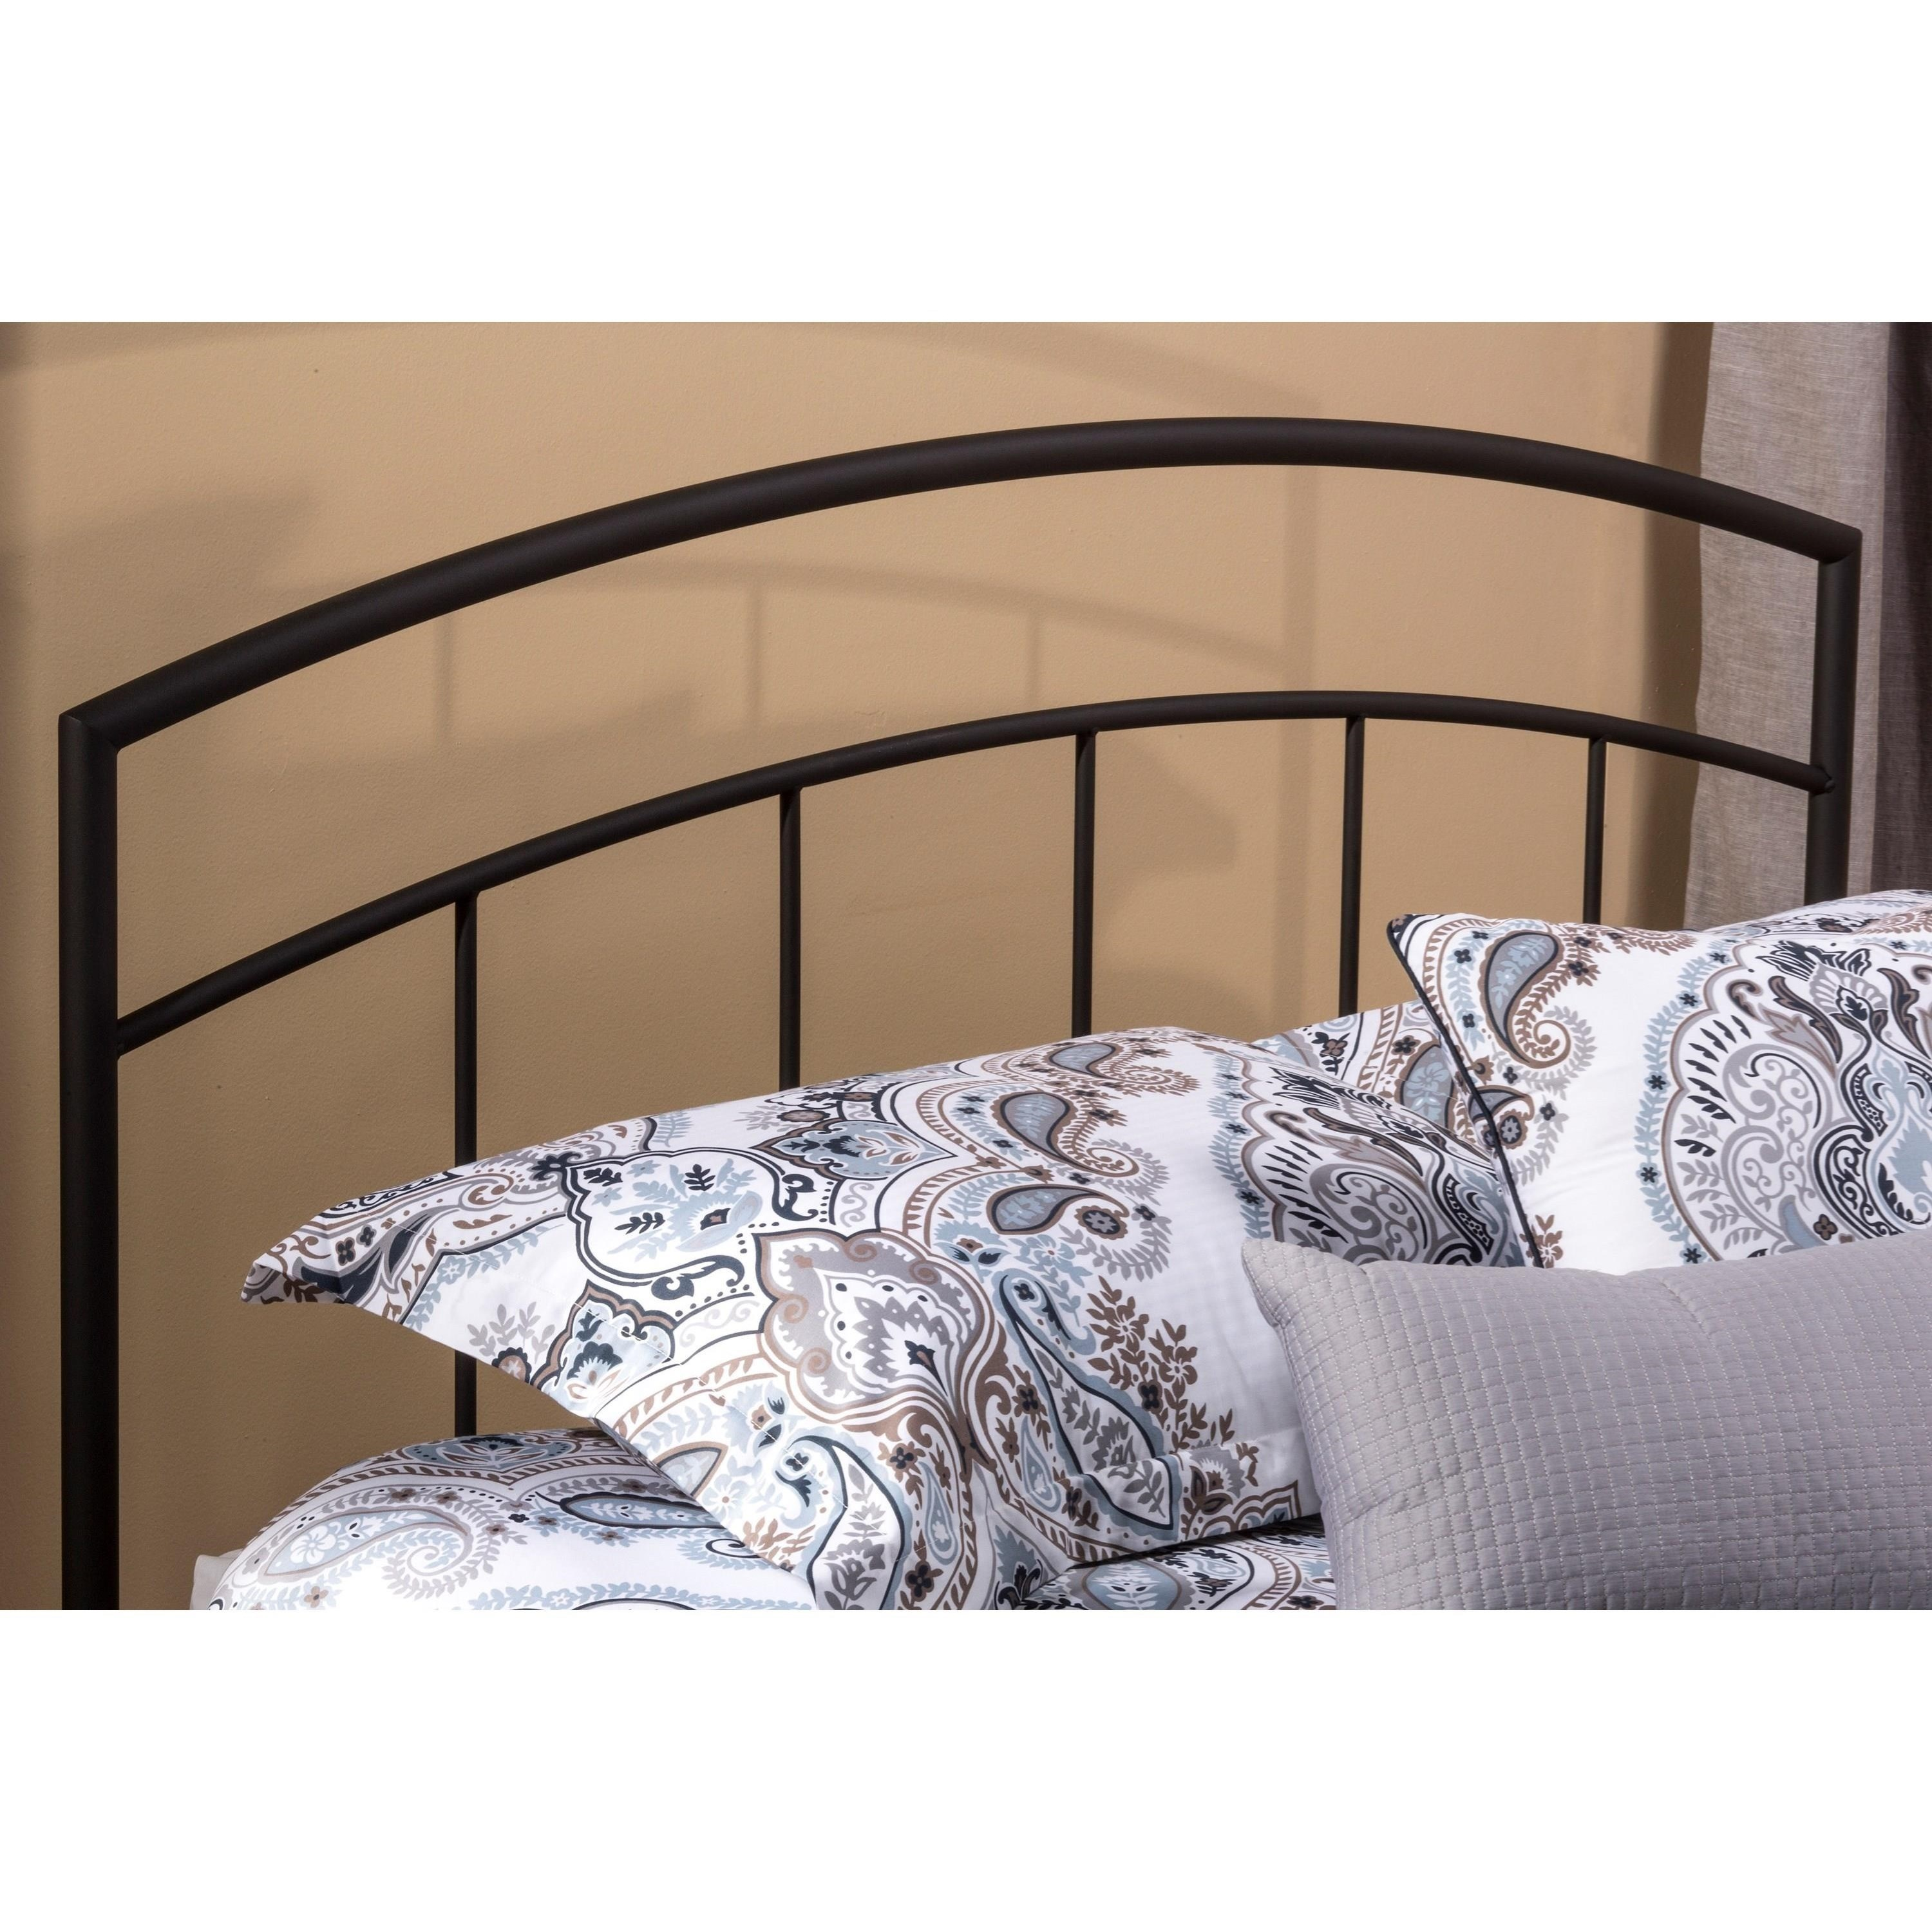 Metal Beds King Headboard by Hillsdale at Steger's Furniture